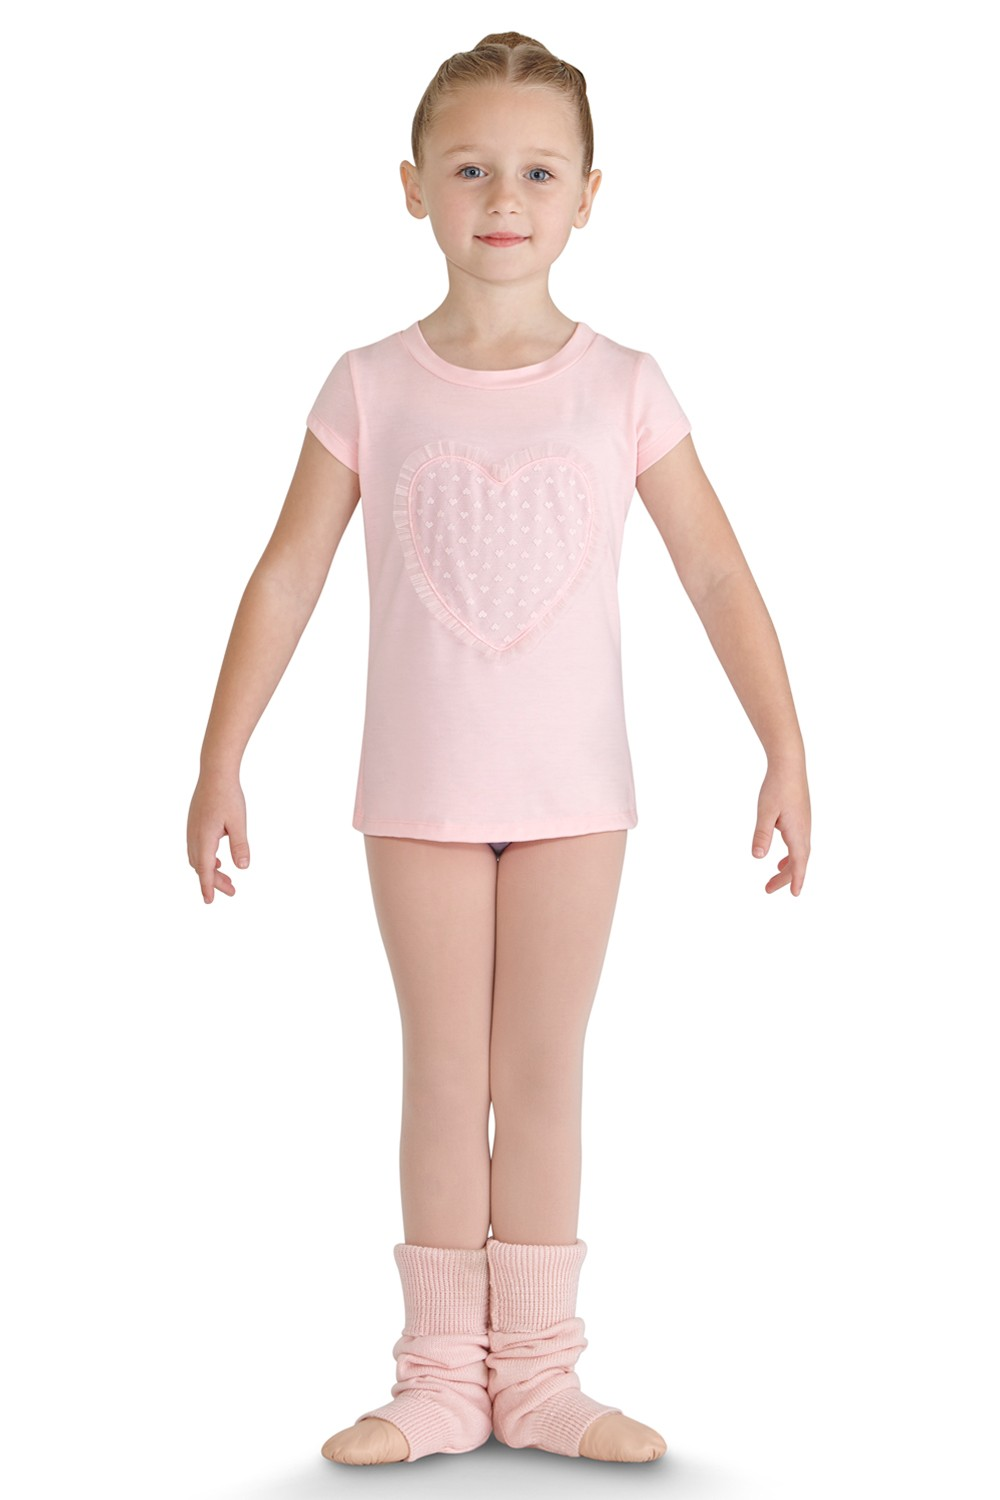 Zofia  Children's Dance Tops